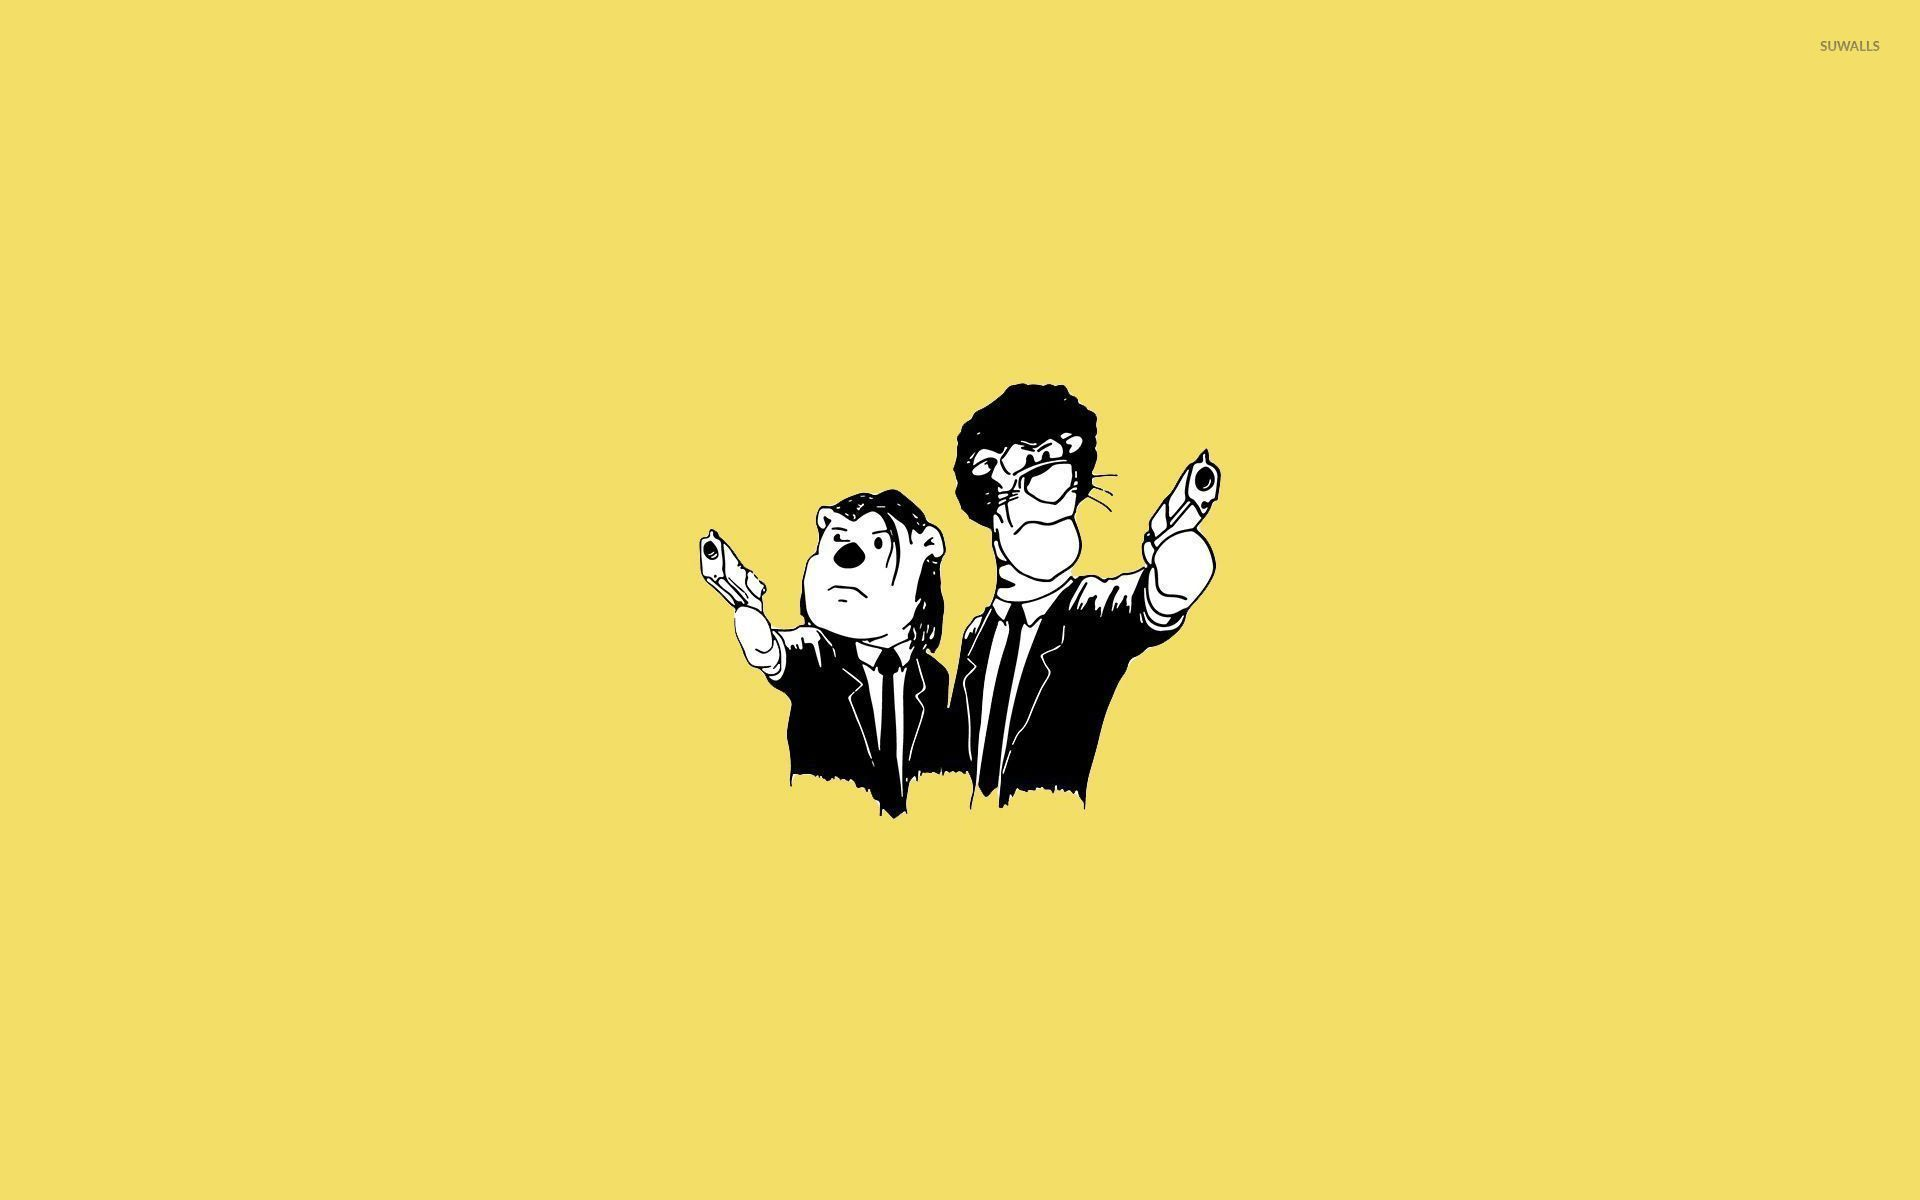 Winnie The Pooh Pulp Fiction Crossover Wallpaper Funny